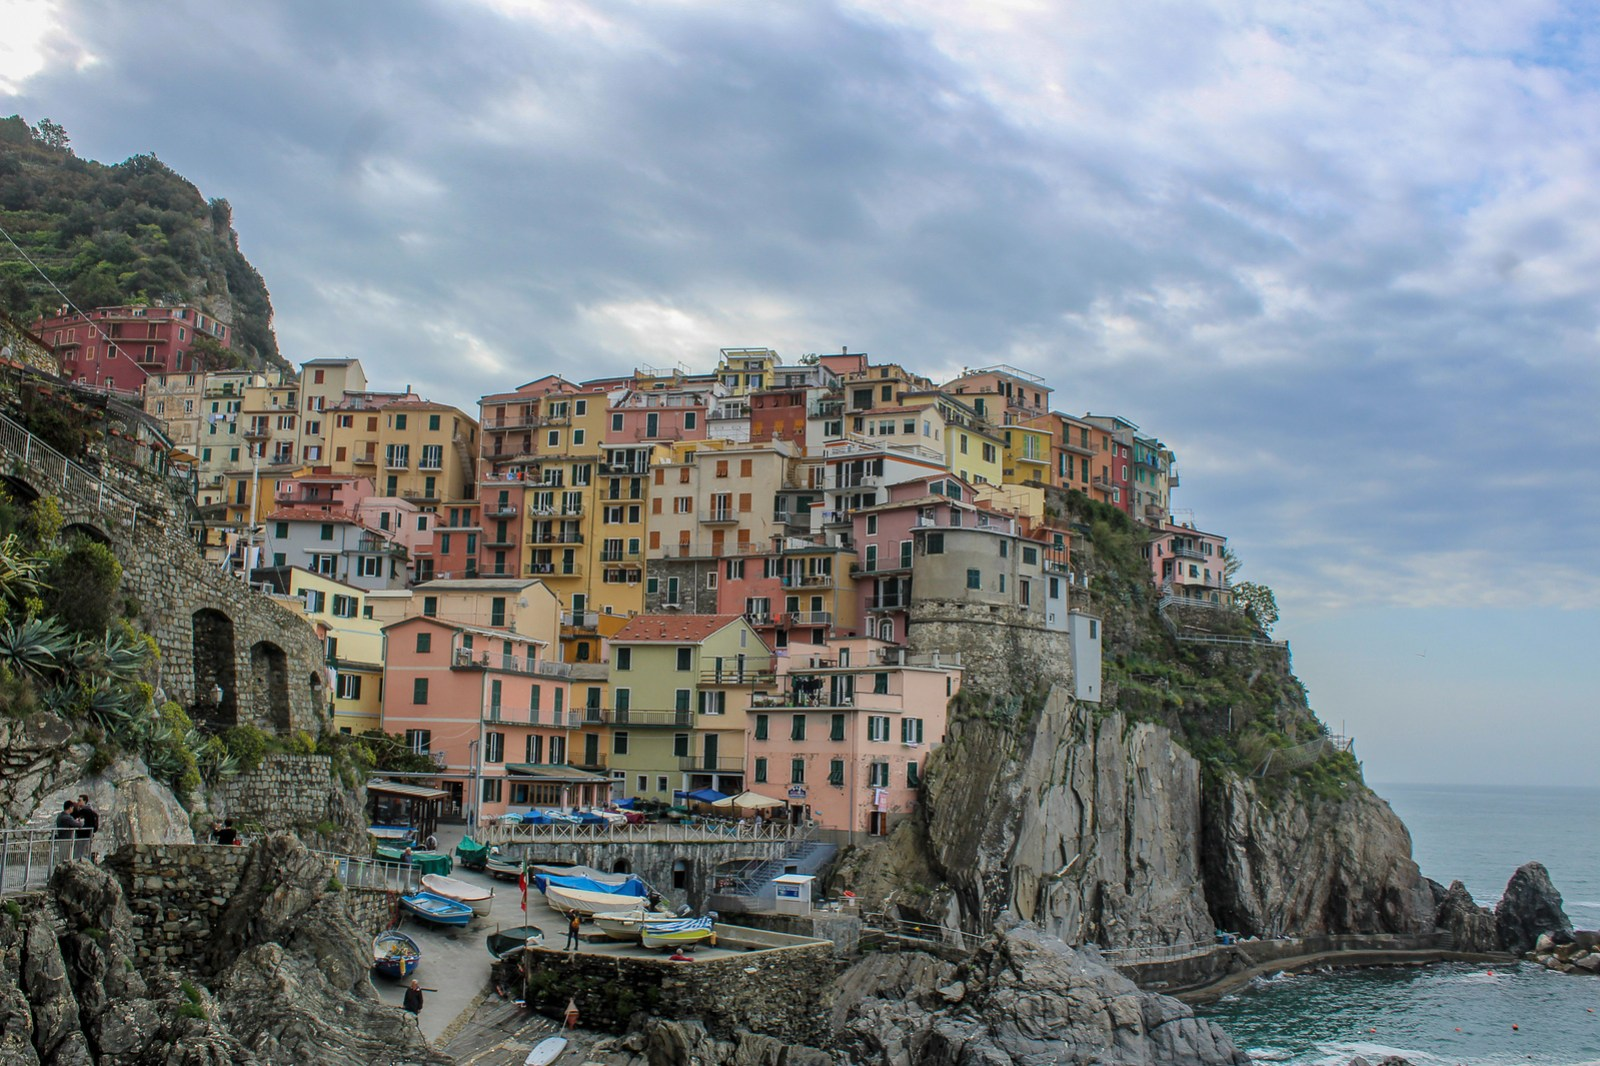 not sure where to stay when visiting cinque terre? give manarola a chance!